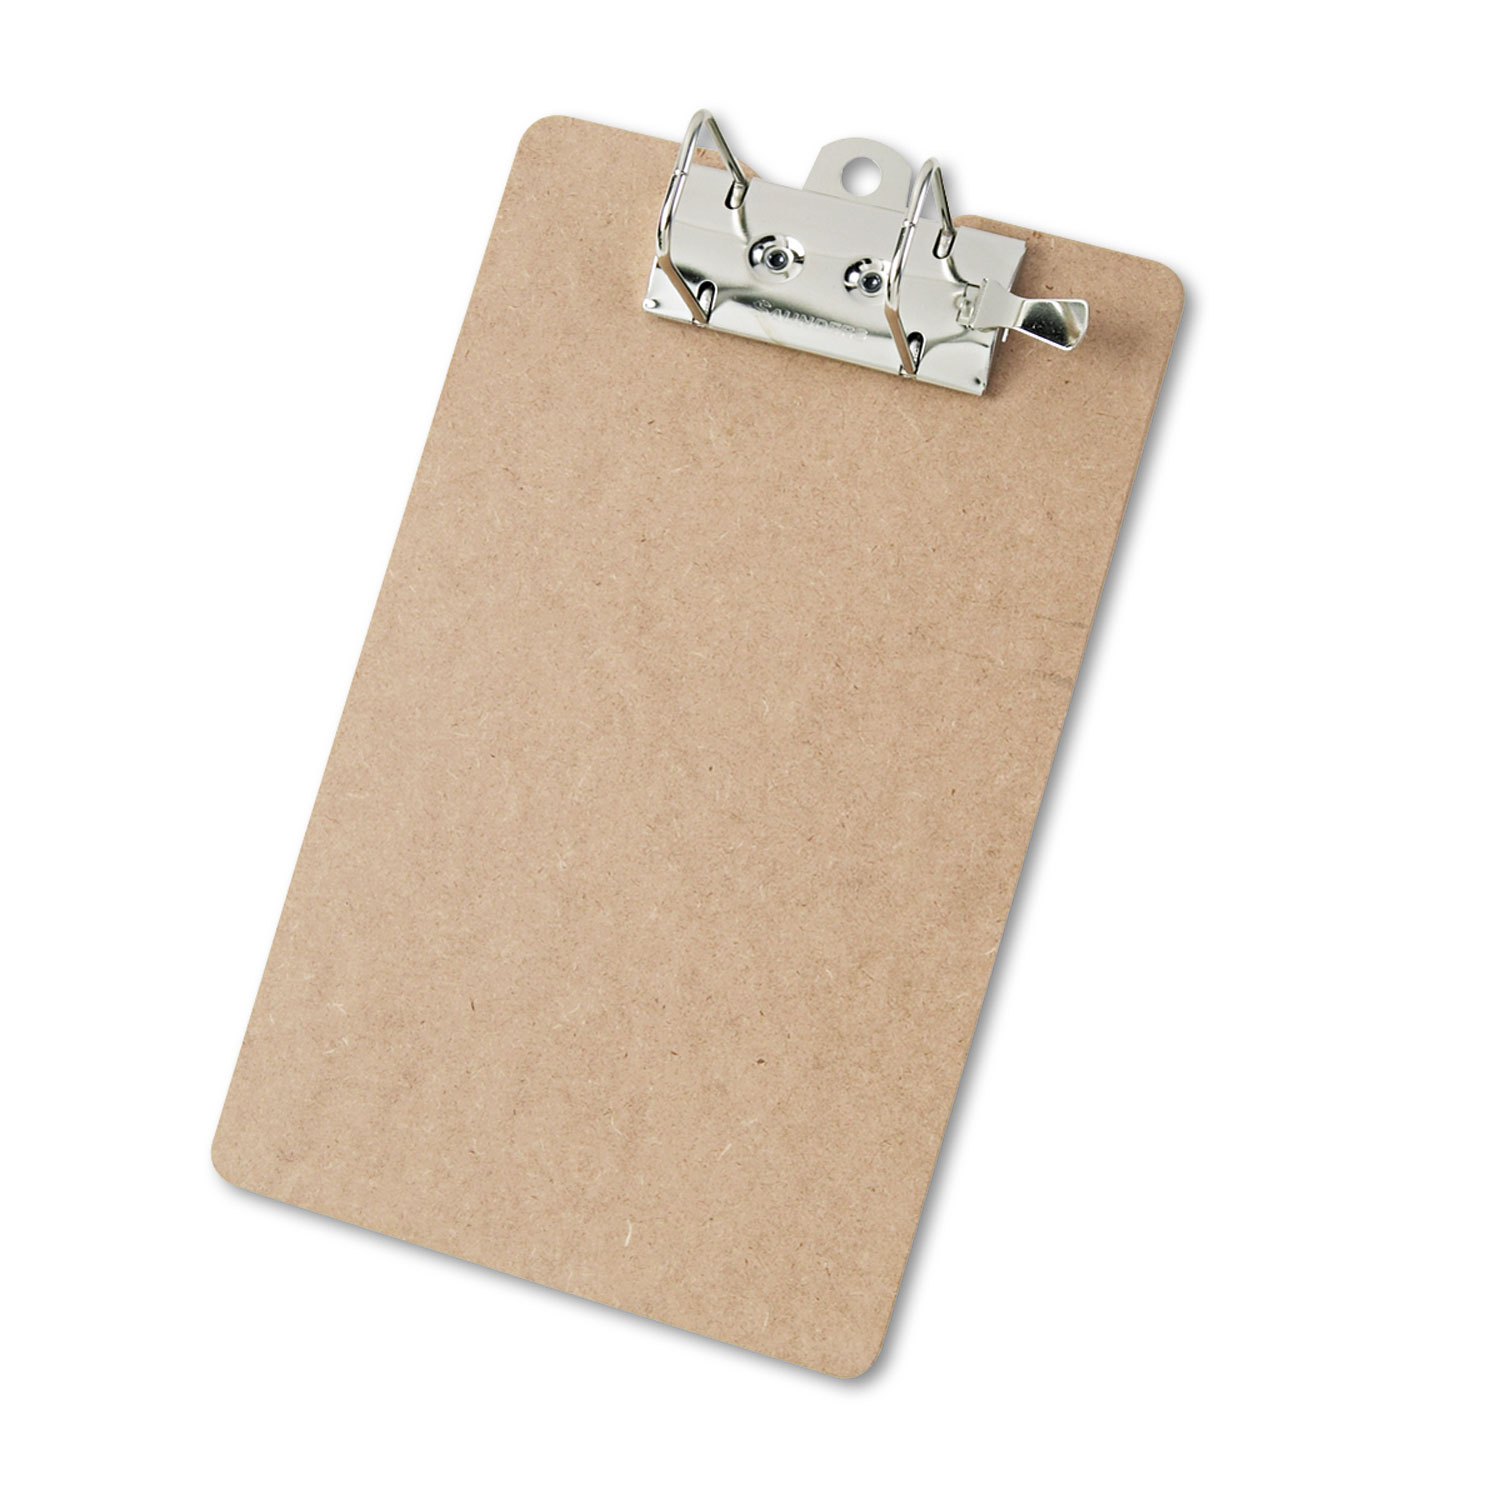 arch clipboard by saunders sau05712 ontimesupplies com